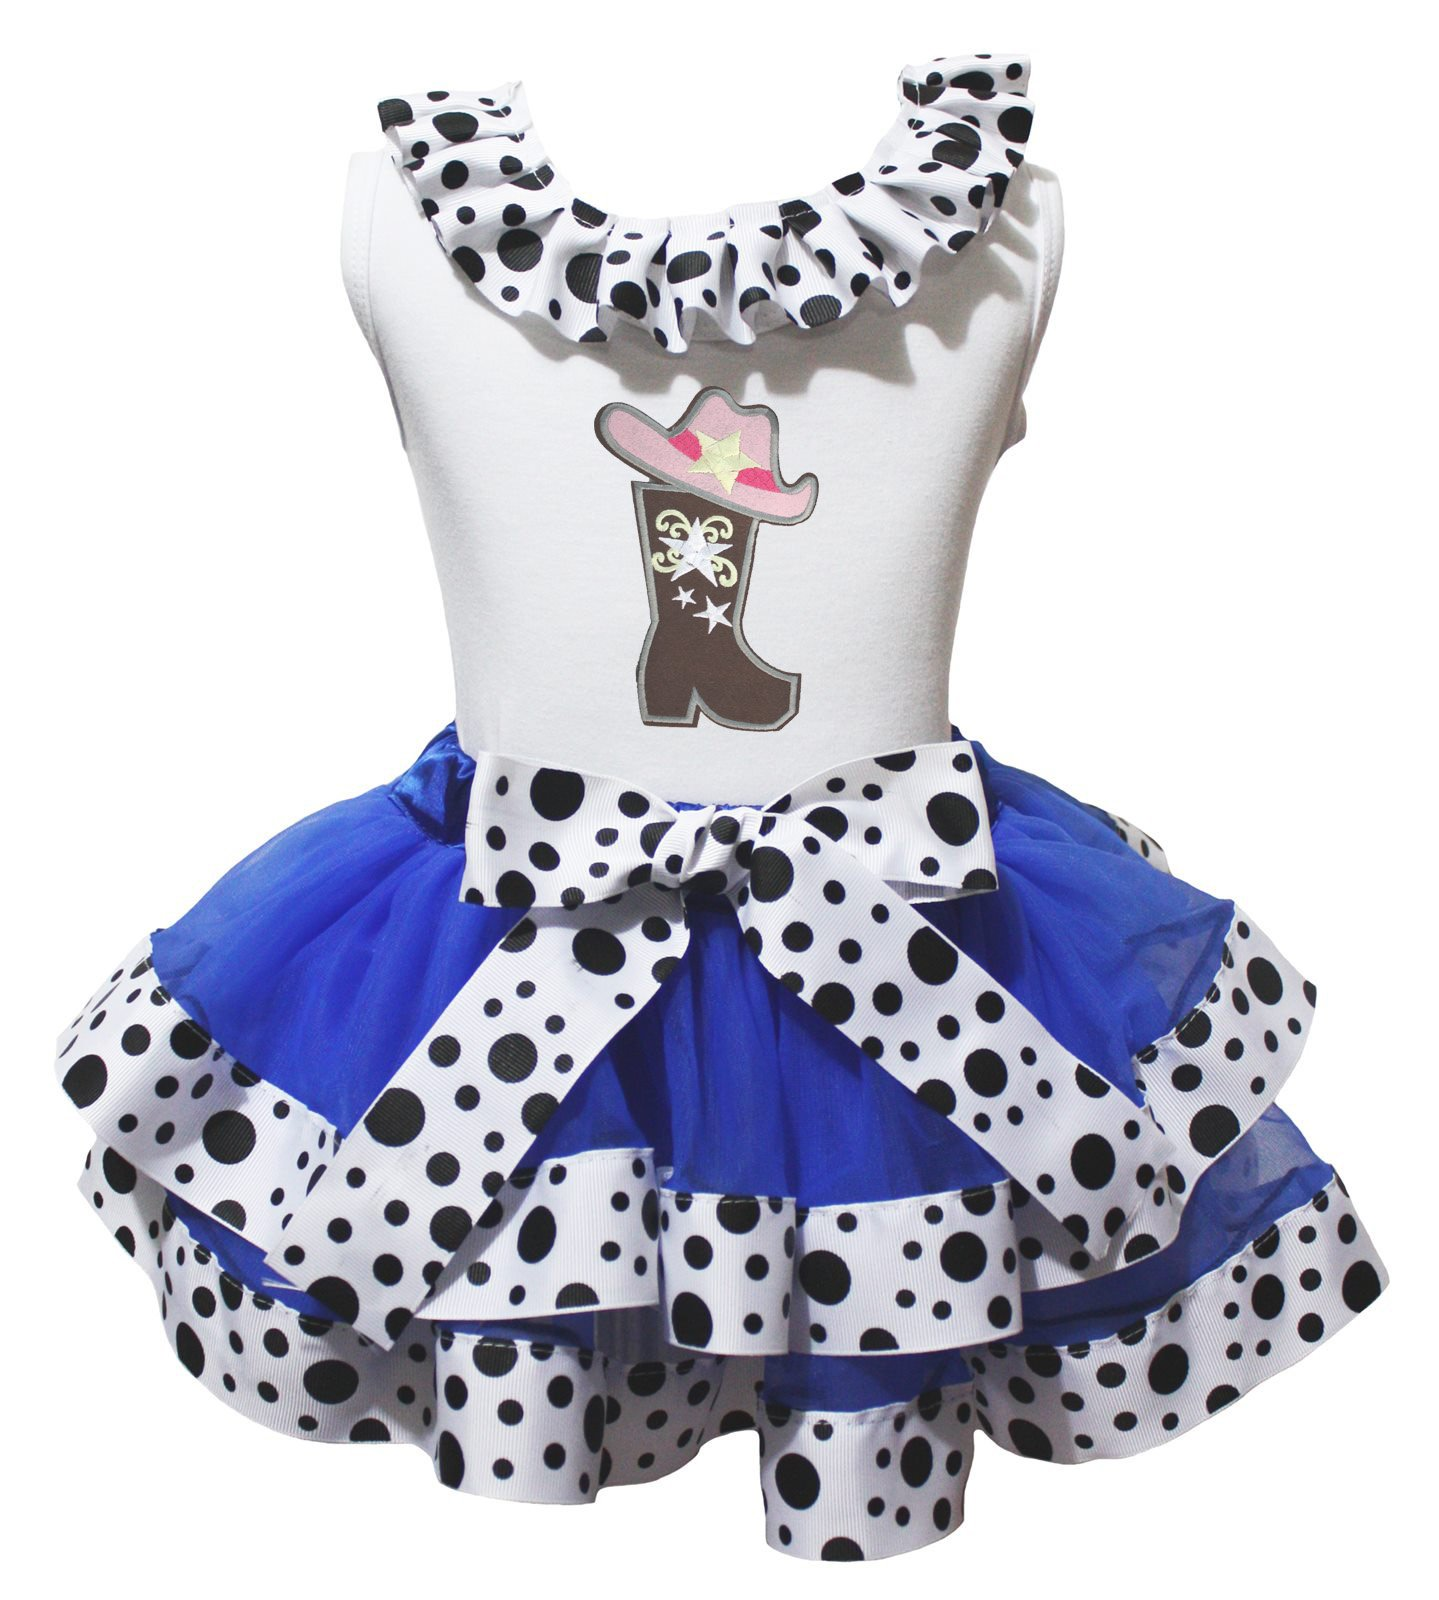 Cow Girl Hat Boot Dress Shirt Blue Milk Cow Ribbon Petal Skirt Outfit Nb-8y (3-12 Months)